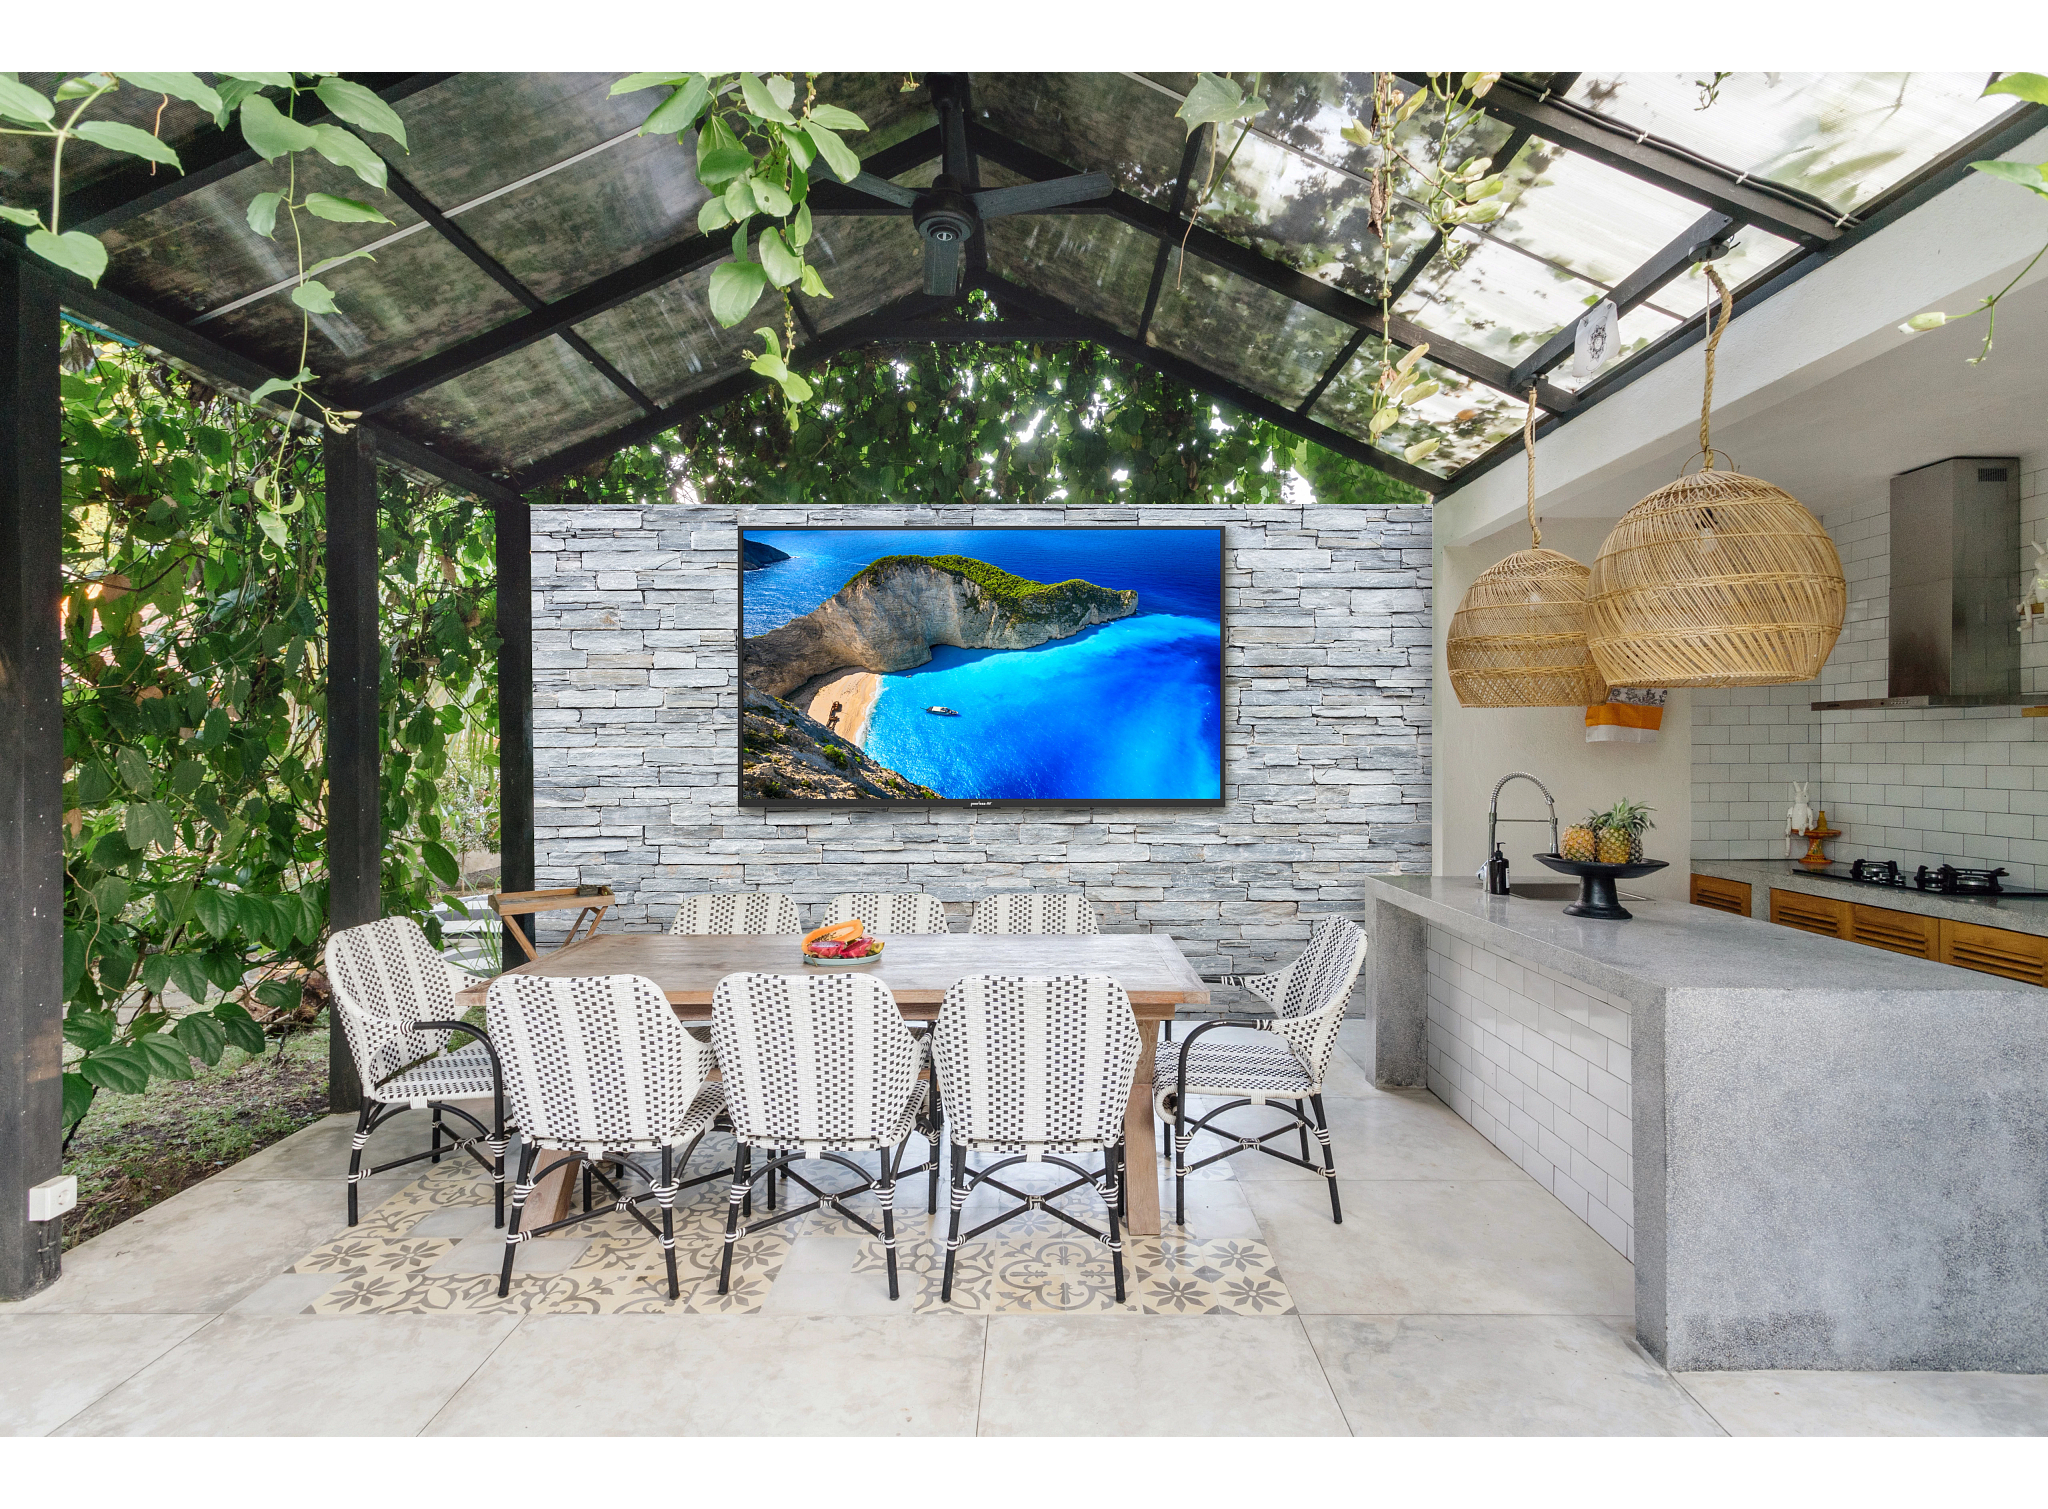 Neptune Shade Series Outdoor TVs Application Image 2-3